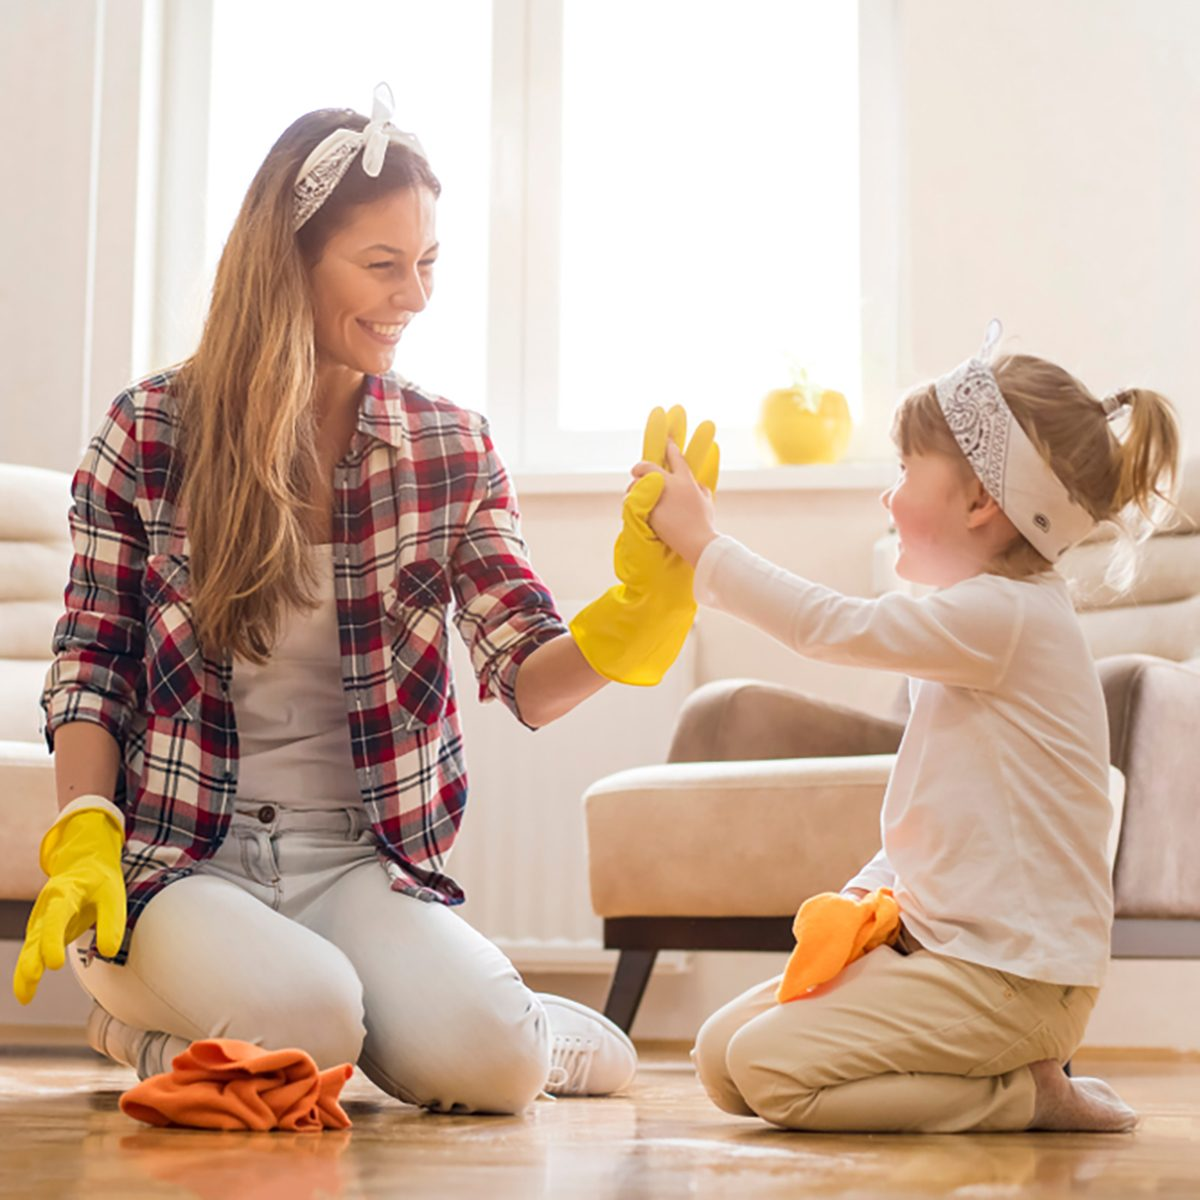 Daughter and mother cleaning home together and having fun